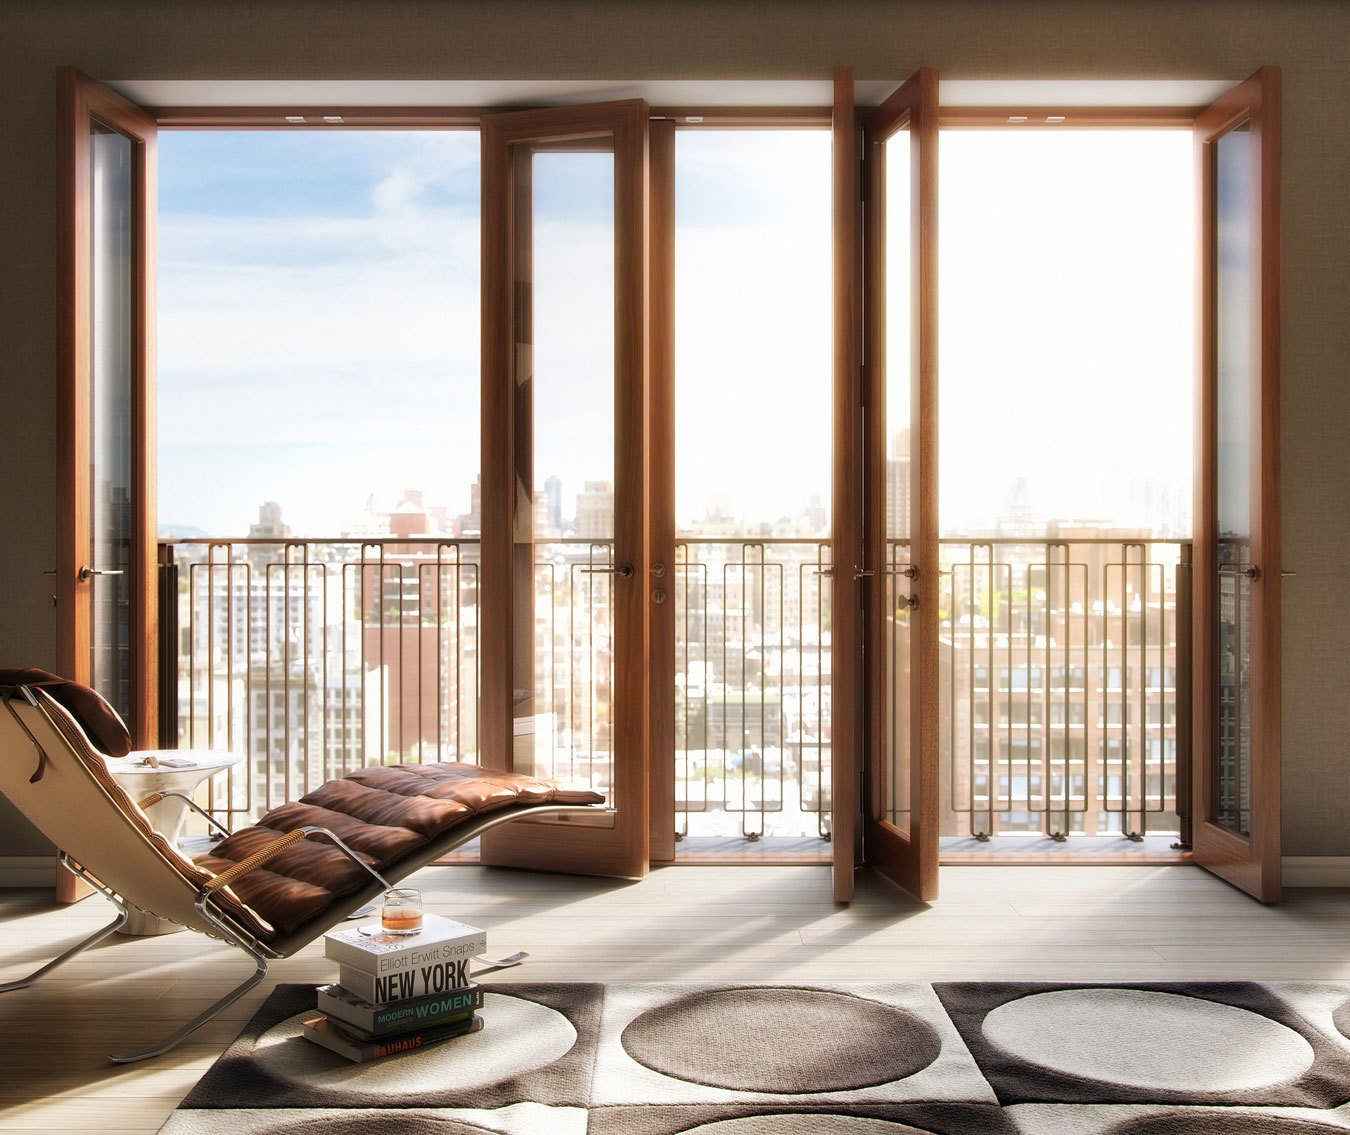 Hansen employed danish masonry brick work and solid mahogany framed windows for his residential project, Two Ten West 77. Danish-Modern Master Thomas Juul-Hansen Talks About Timeless Design - Photo 6 of 6